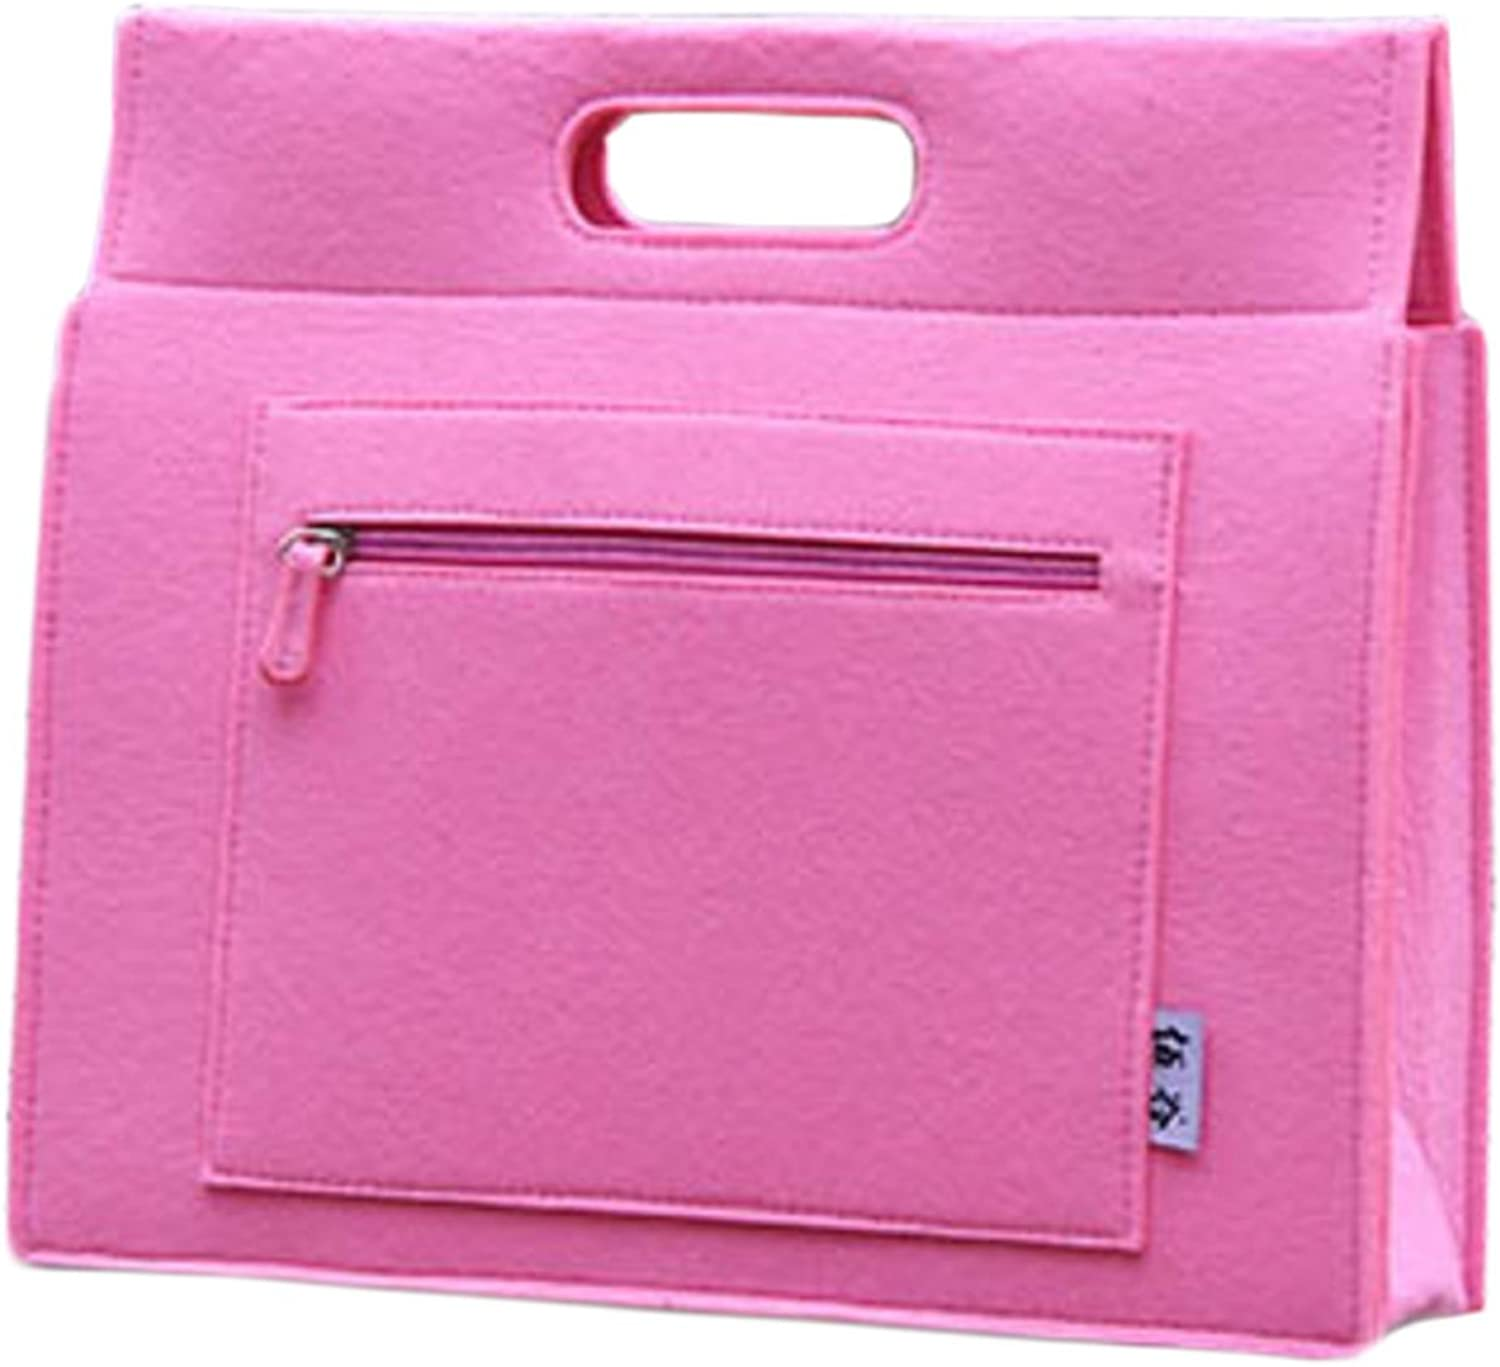 Classic Portable Business Messenger Bag,15.6 inch Pink